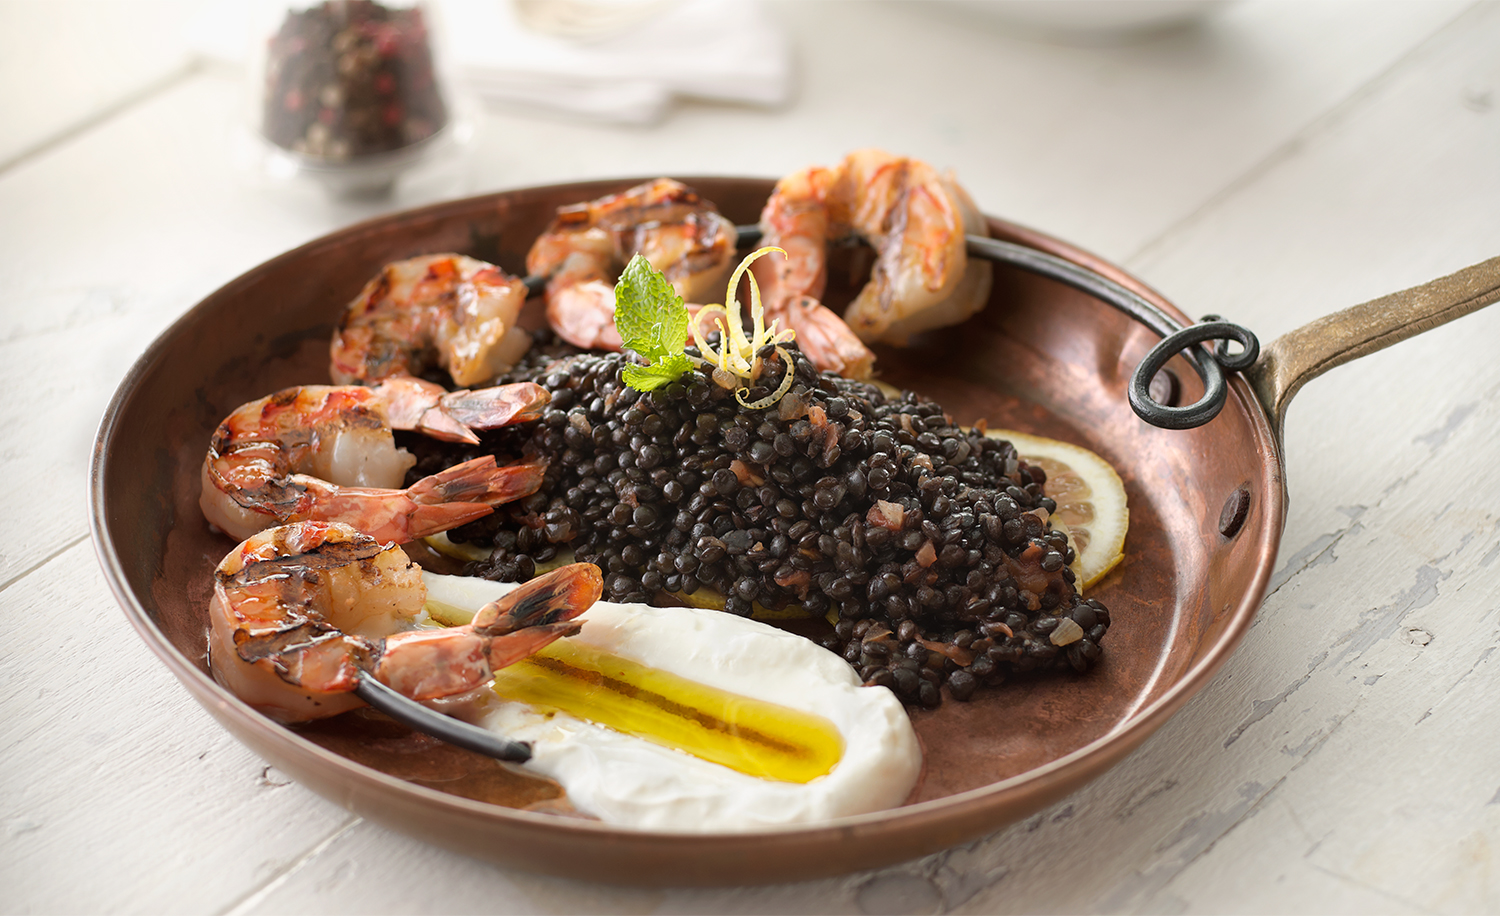 Grilled Shrimp and Lentils | Tony Kubat Photography